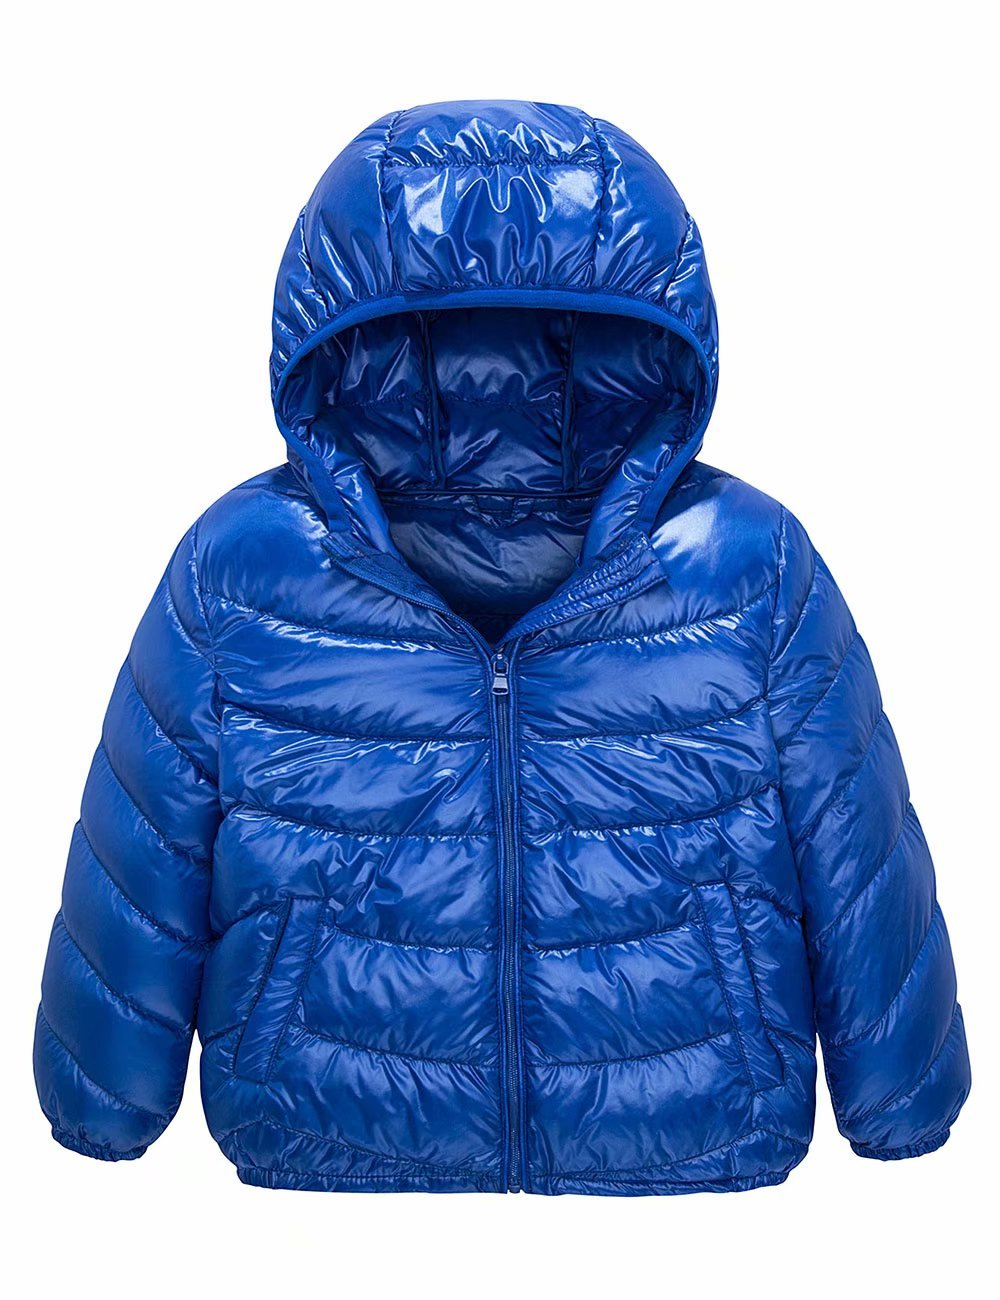 Spring&Gege Boys' Quilted Packable Hoodie Lightweight Puffer Jacket Windproof Outwear Children Warm Duck Down Coat for Boys and Girls Size 18-24 Months Blue